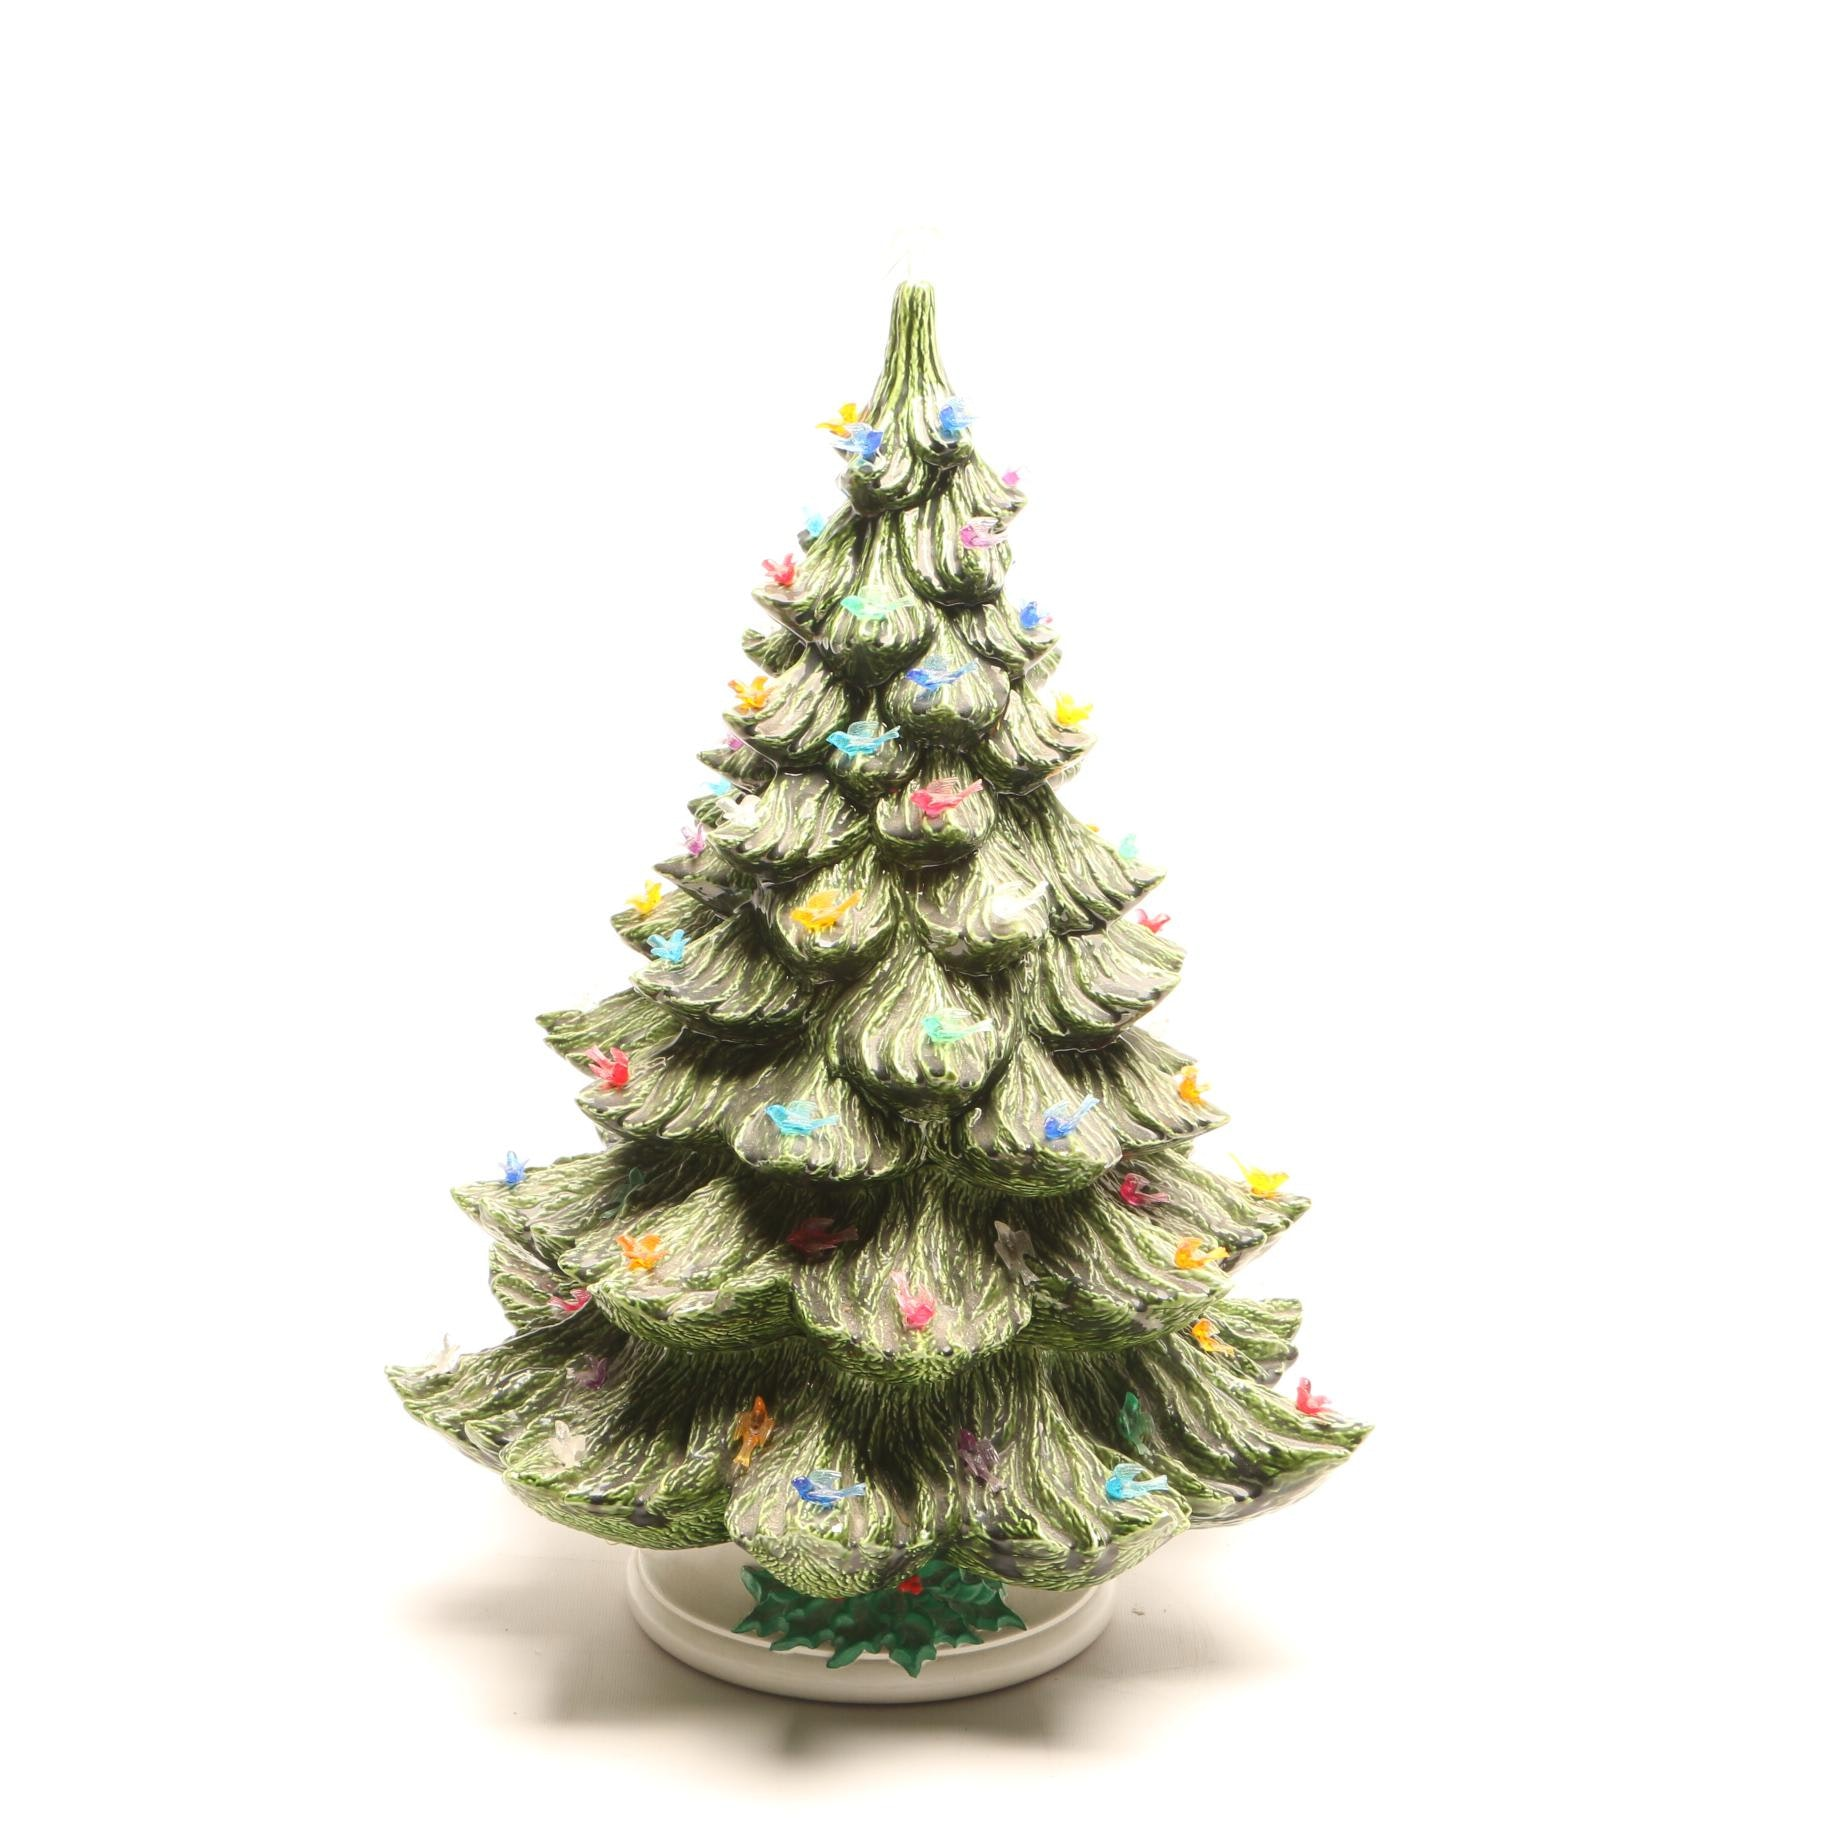 Vintage Ceramic Lighted Christmas Tree